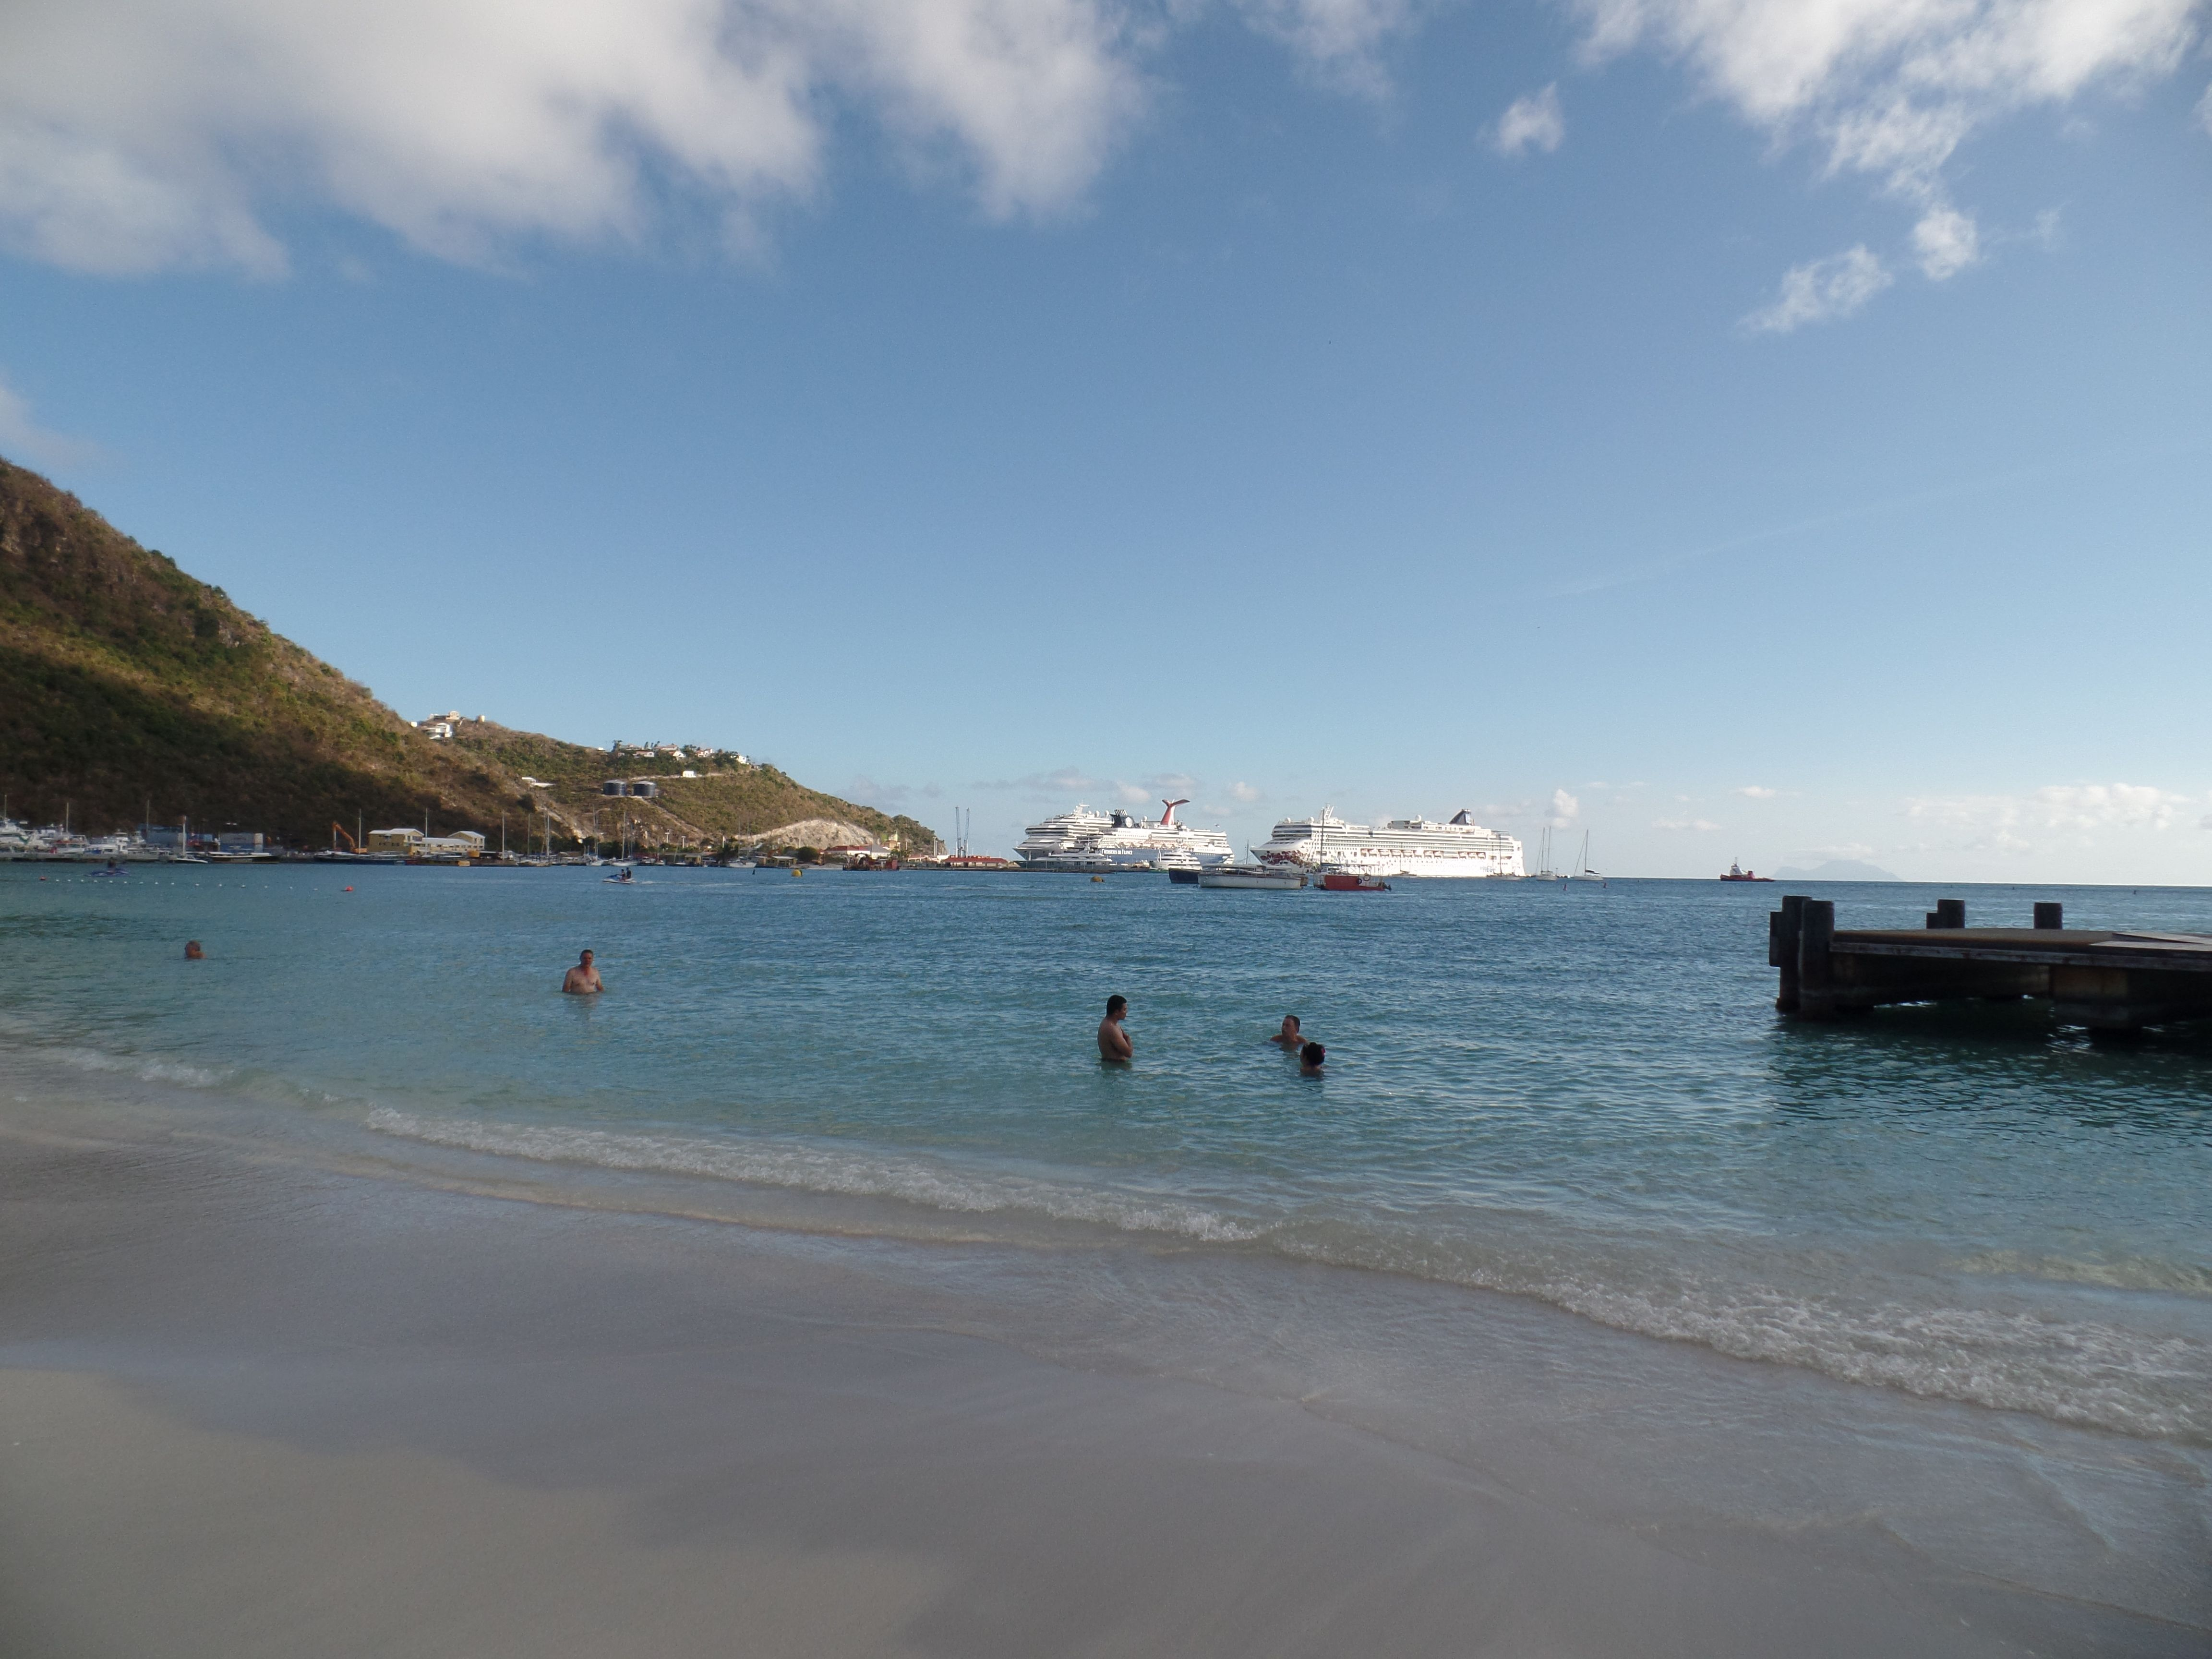 Beach at St. Maarten, with our cruise ship in the background.